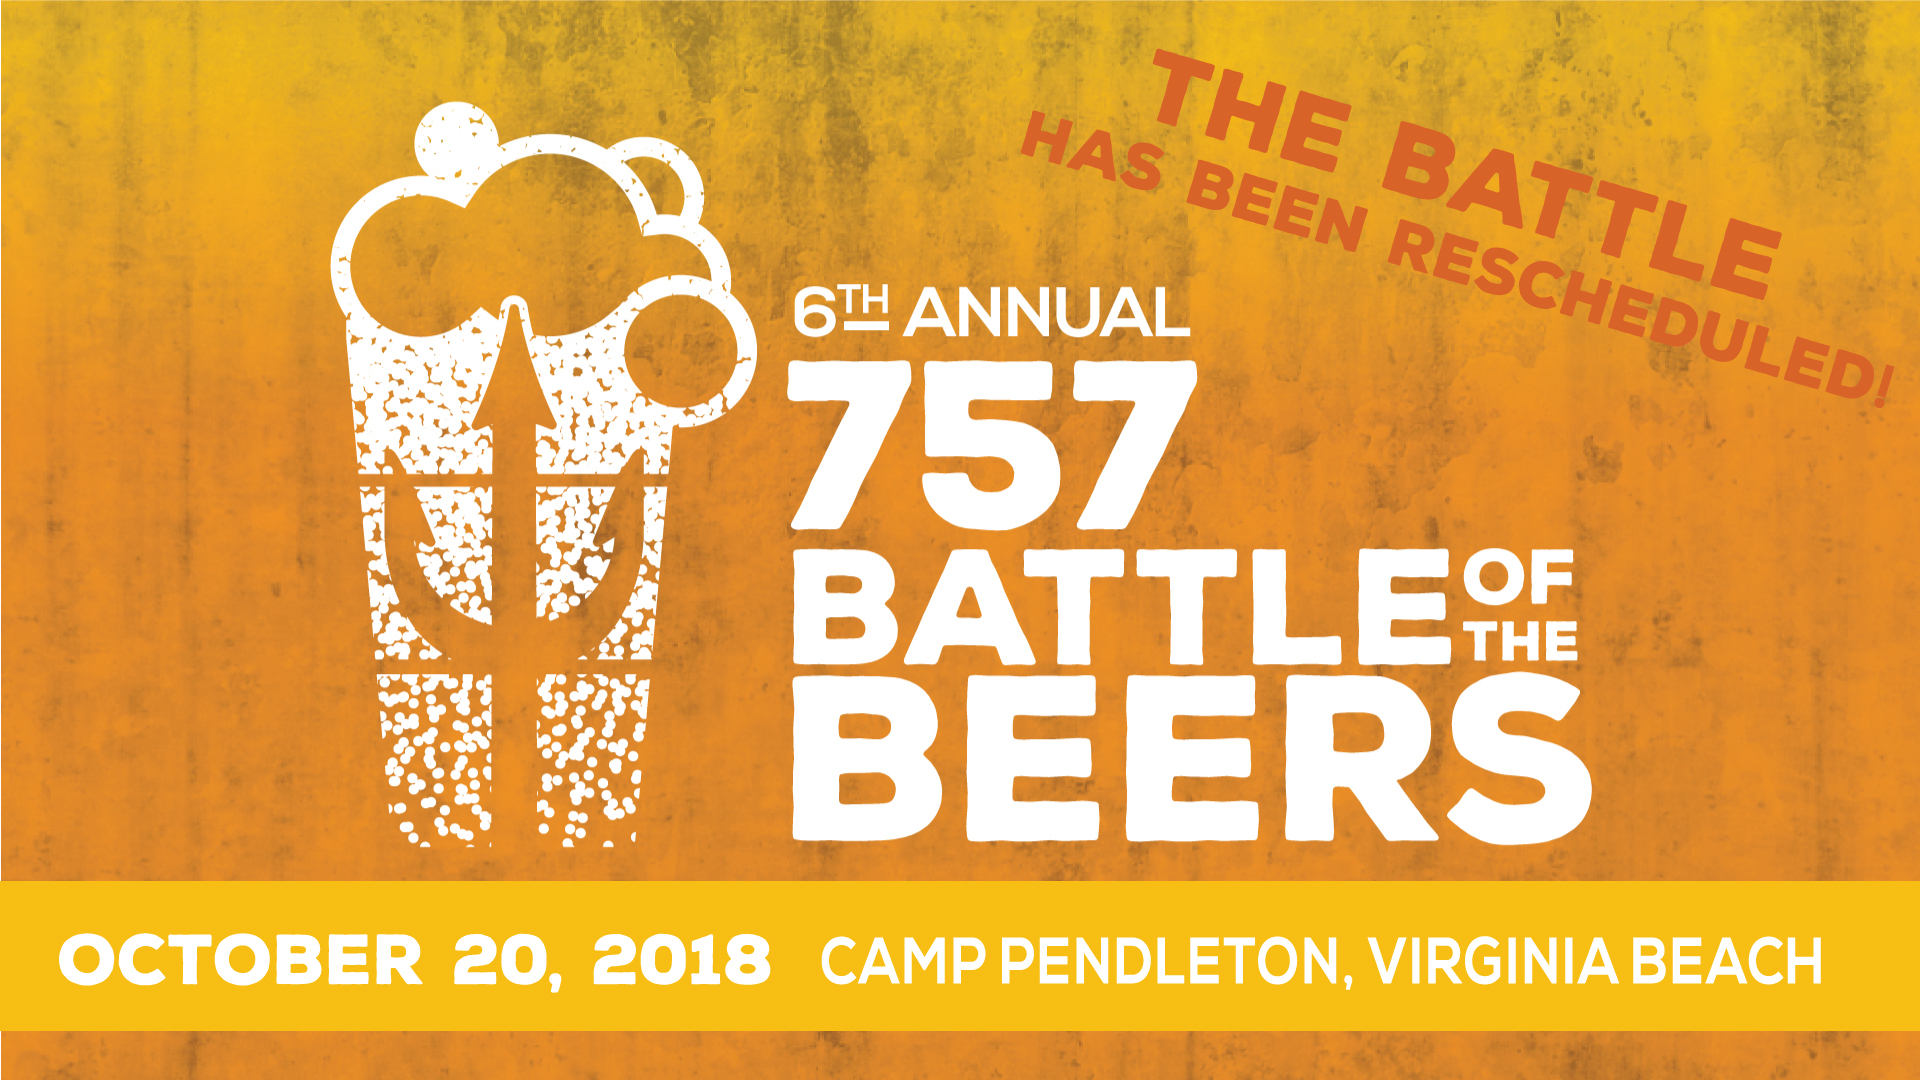 th Annual 757 Battle of the Beers 2018